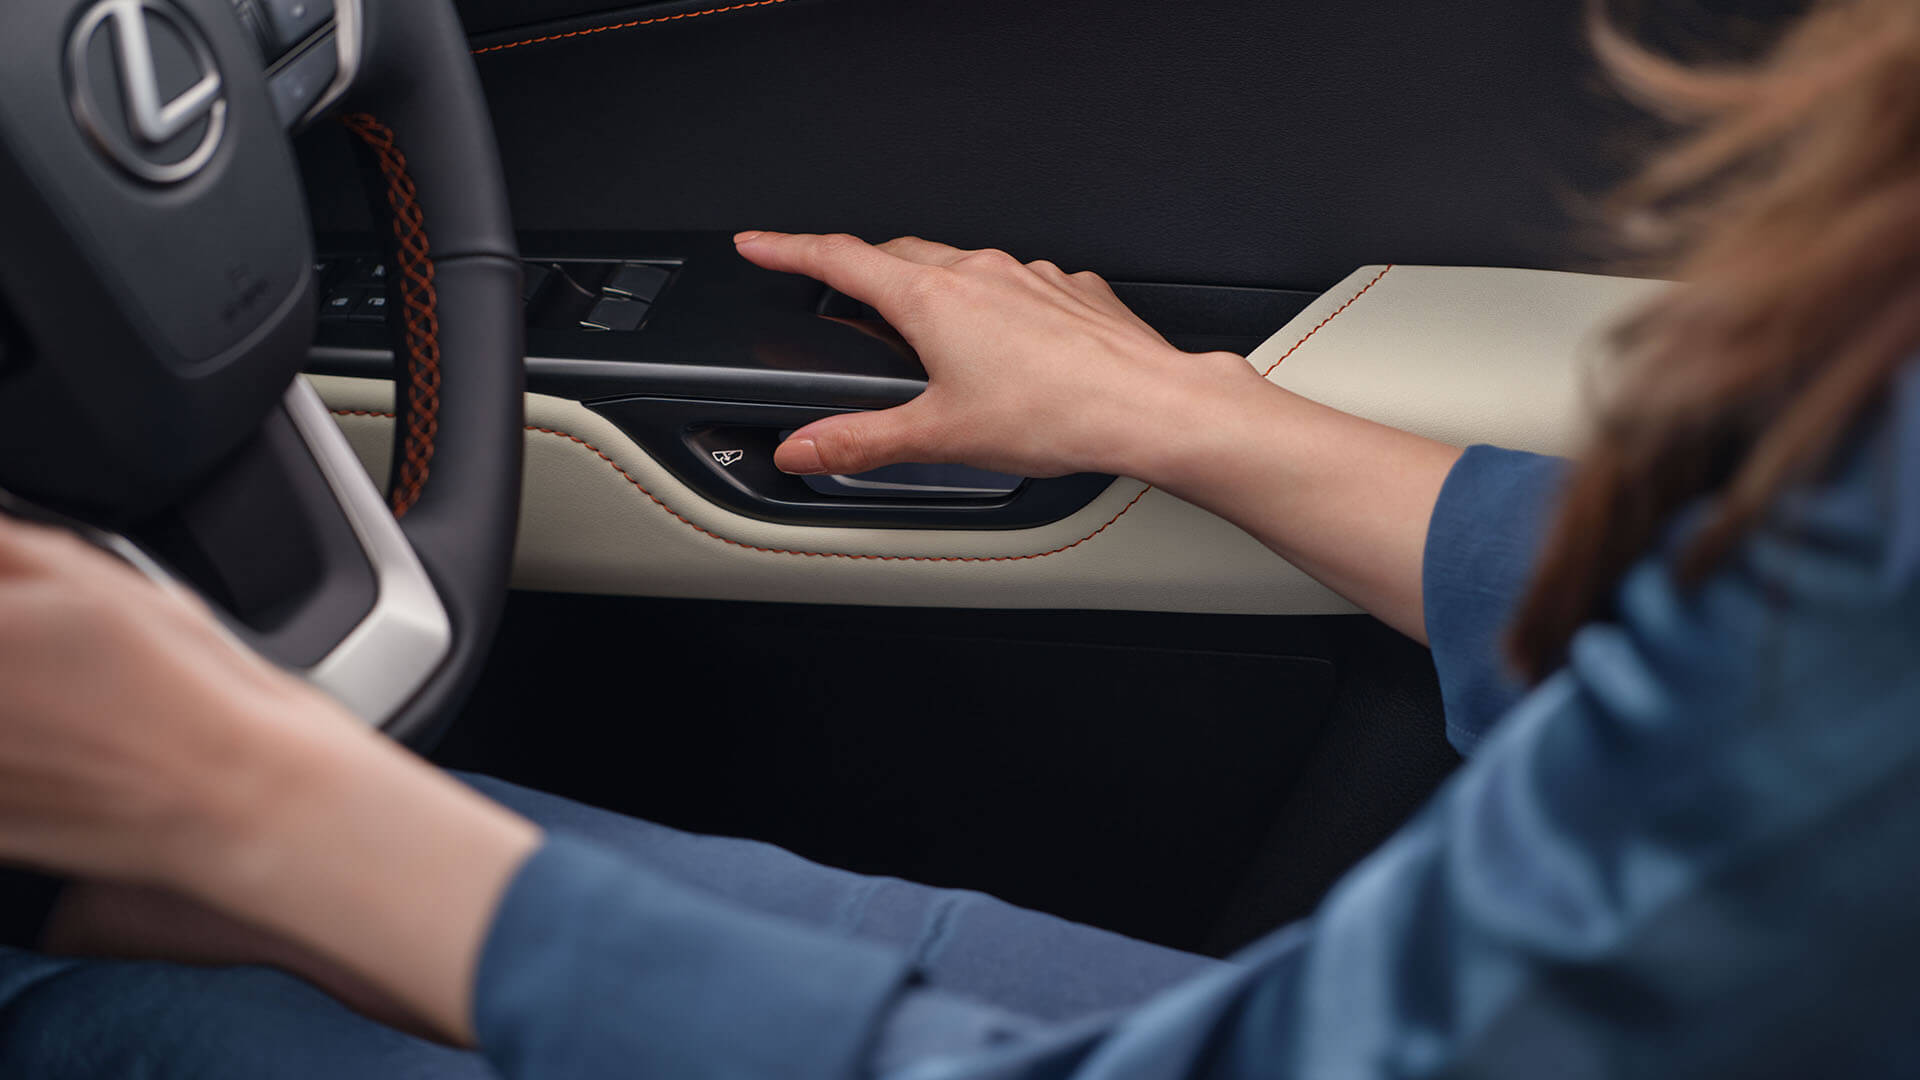 2021 nx overview gallery lifestyle 01